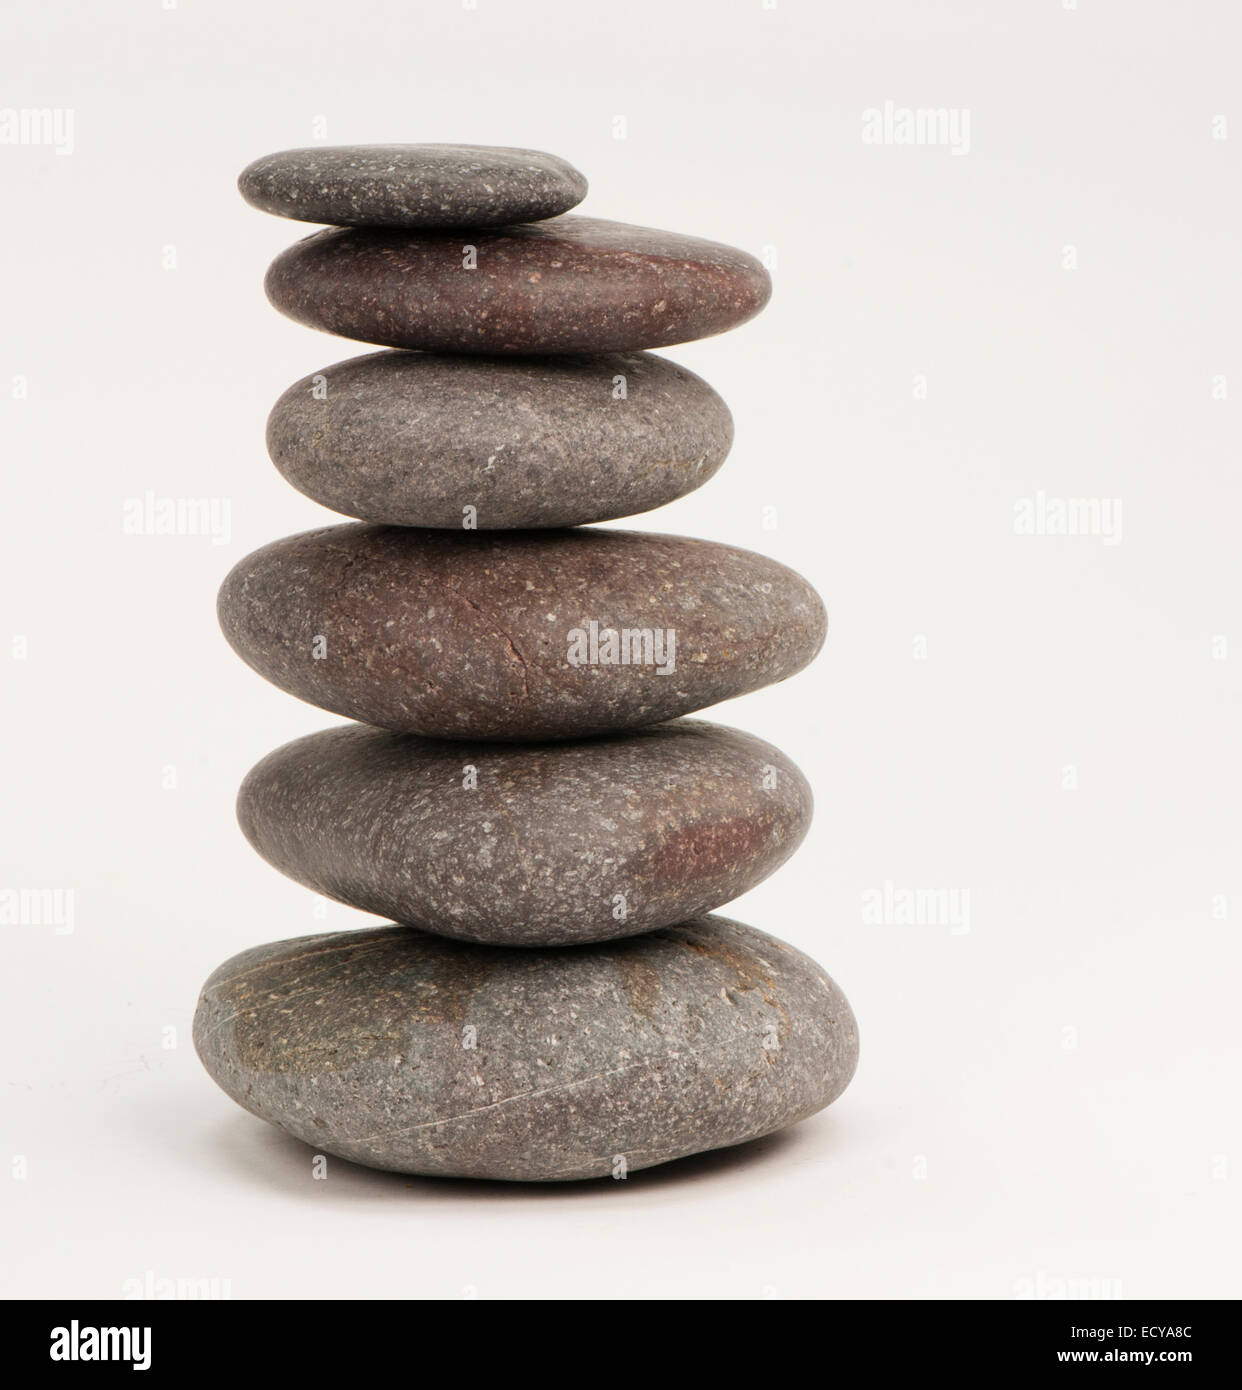 Balancing rounded pebbles. - Stock Image